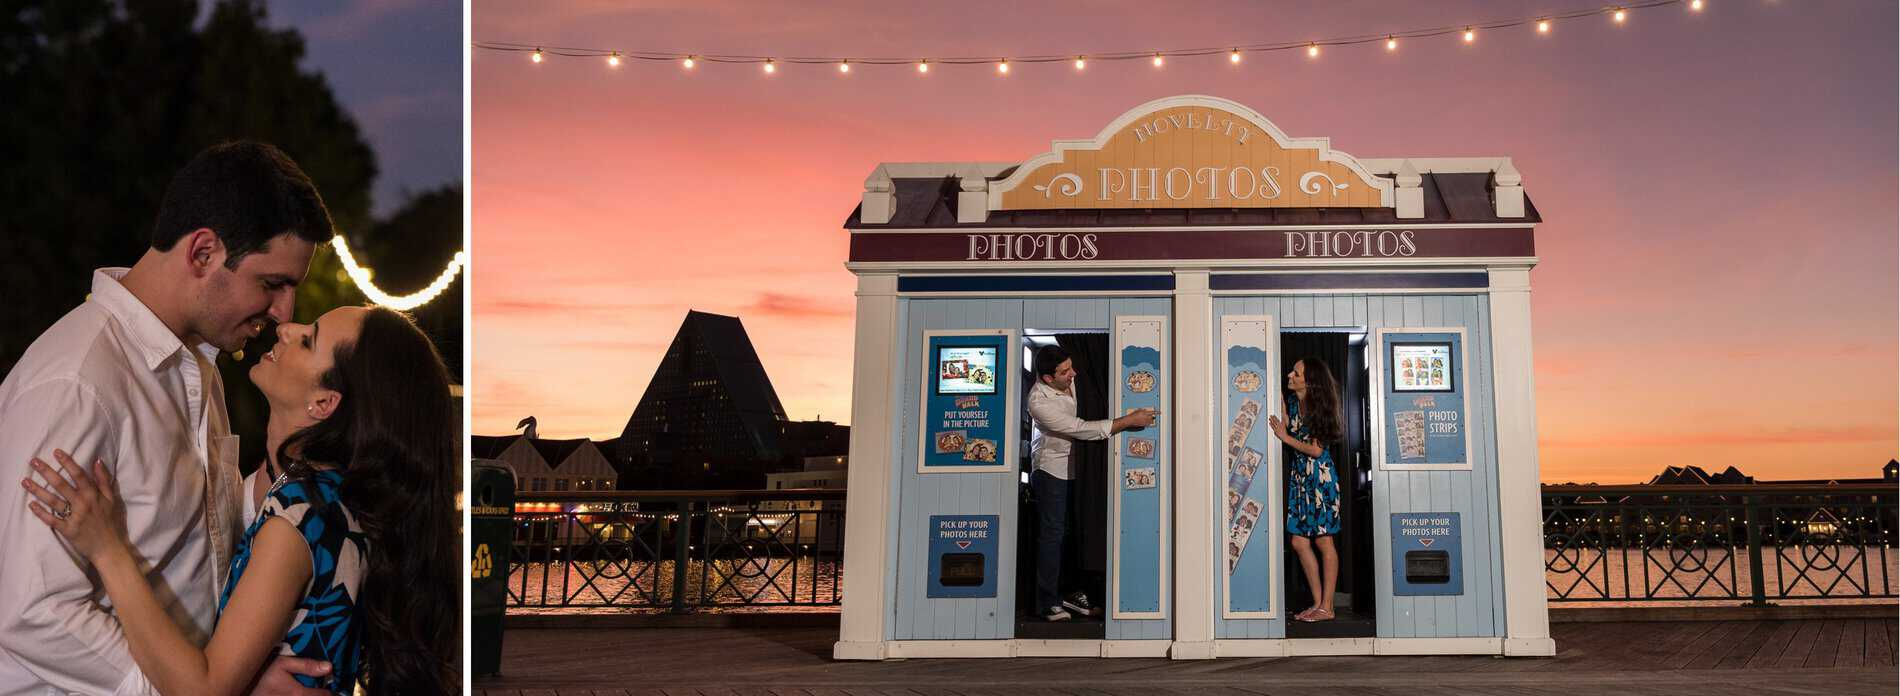 Couple at the Photo Booth during sunset at Disney Boardwalk